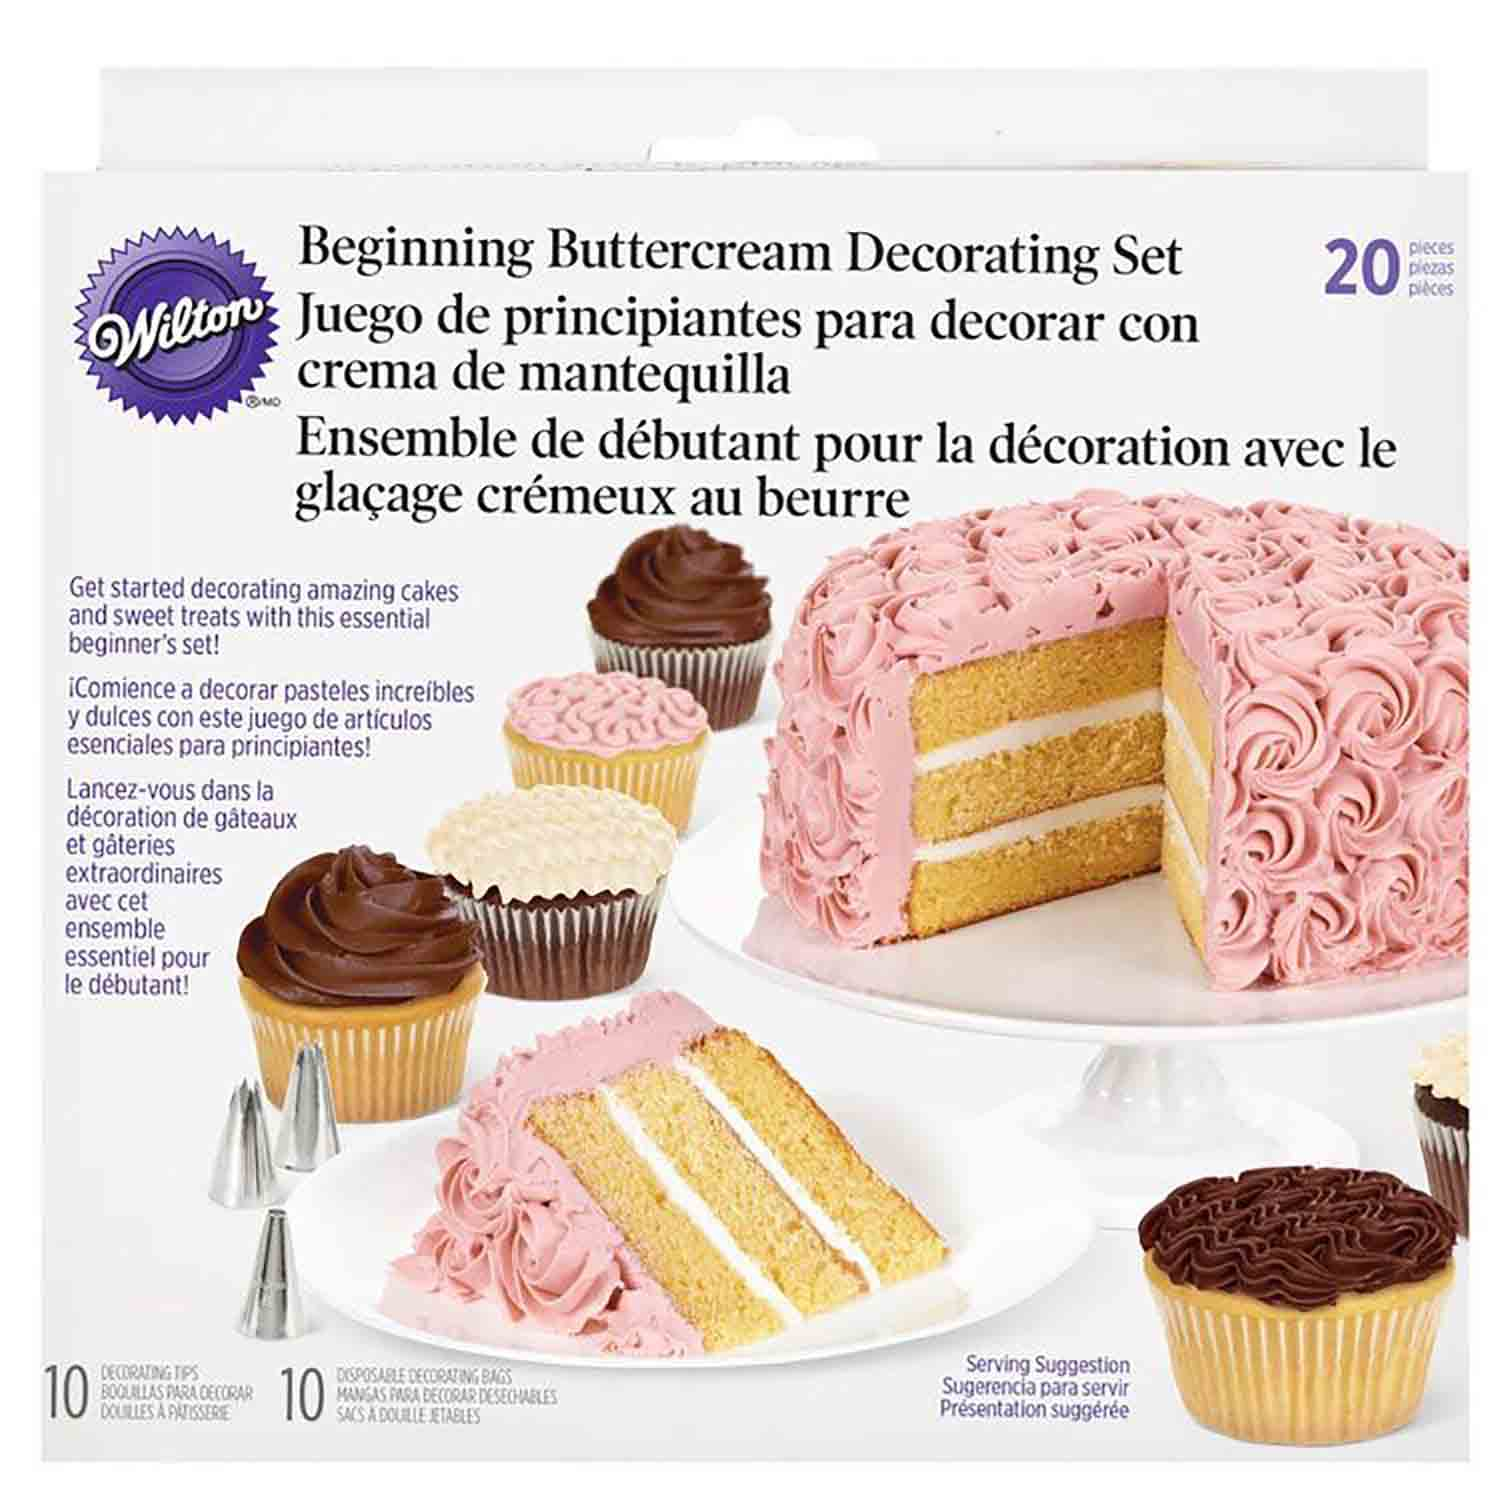 Basic Buttercream Decorating Set